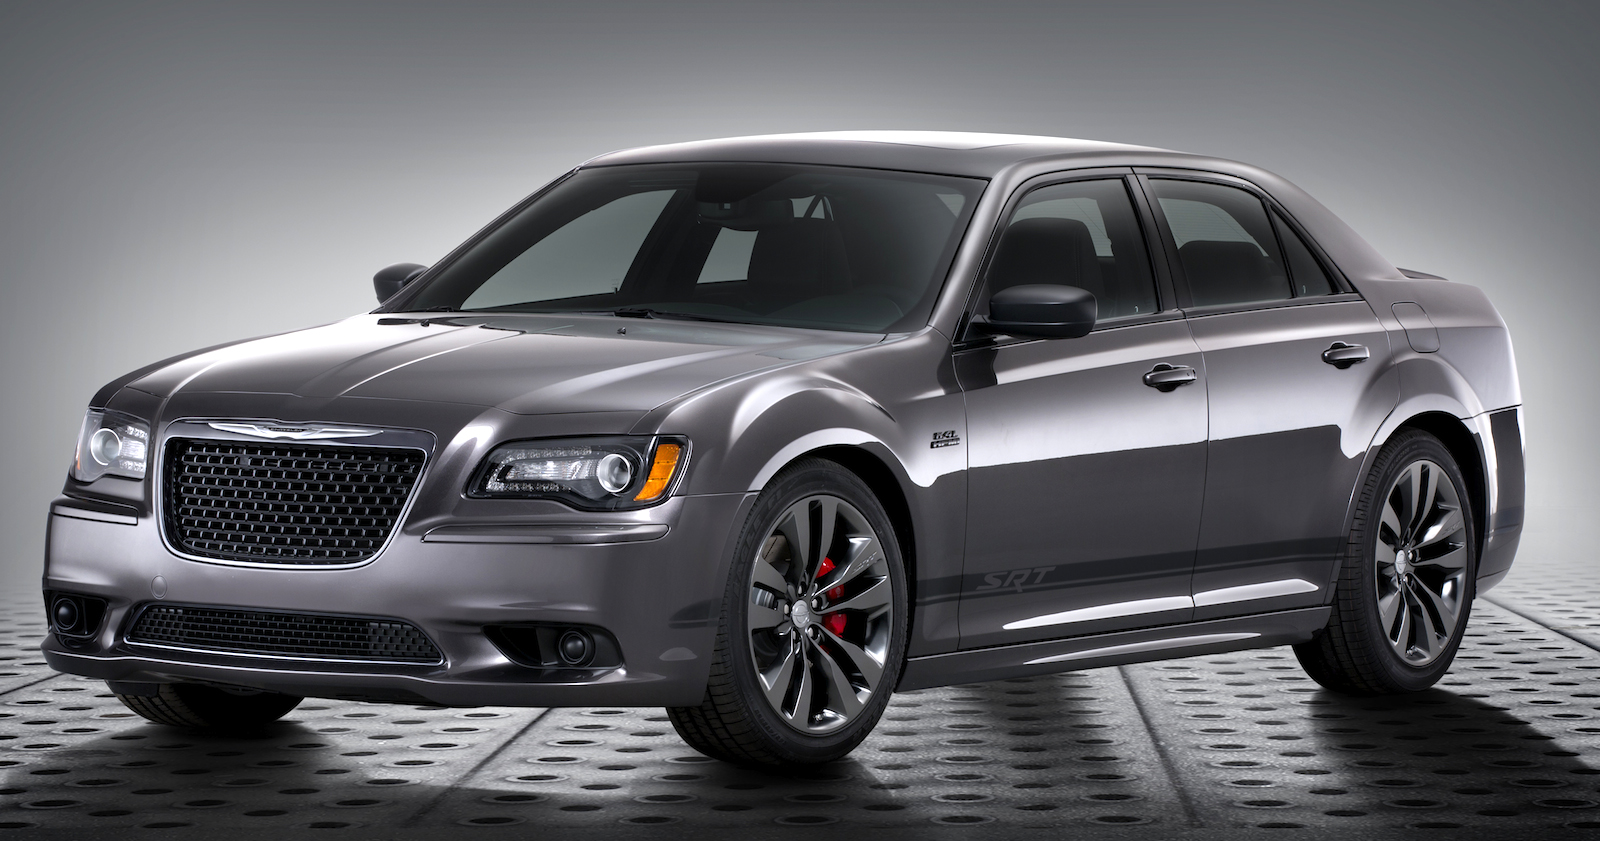 chrysler 300 srt core satin vapour special edition launches from 60 000 photos 1 of 4. Black Bedroom Furniture Sets. Home Design Ideas